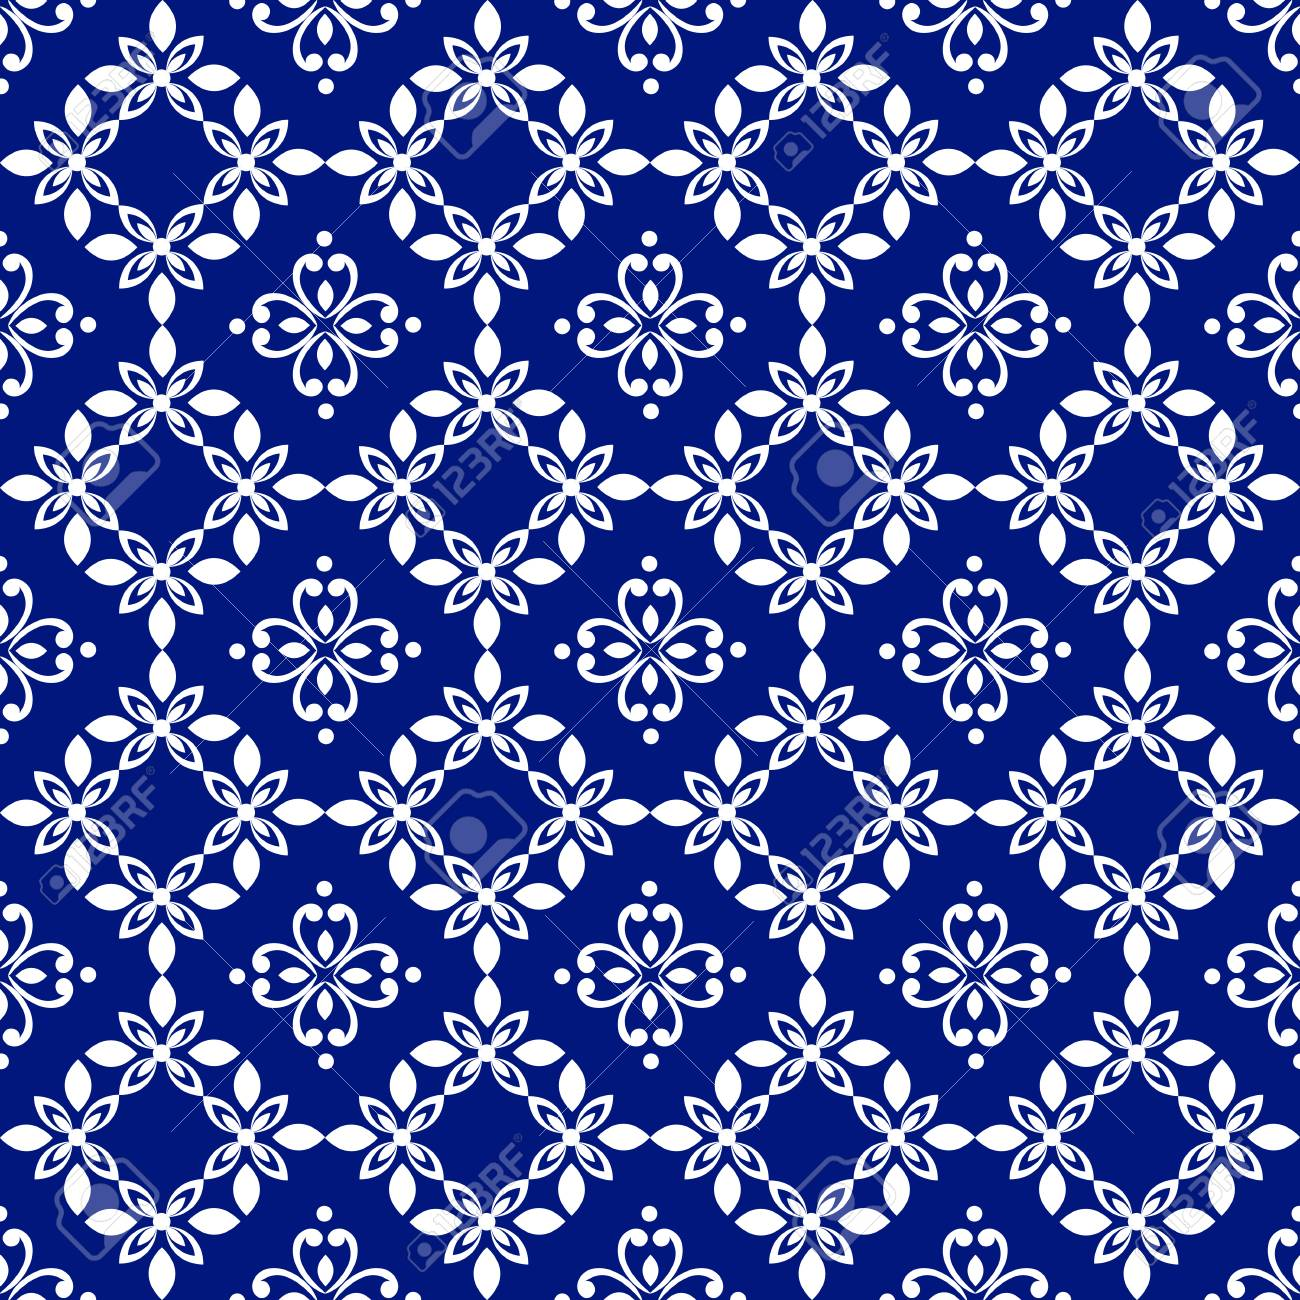 Wallpaper Baroque Damask White And Blue Floral Pattern Vintage